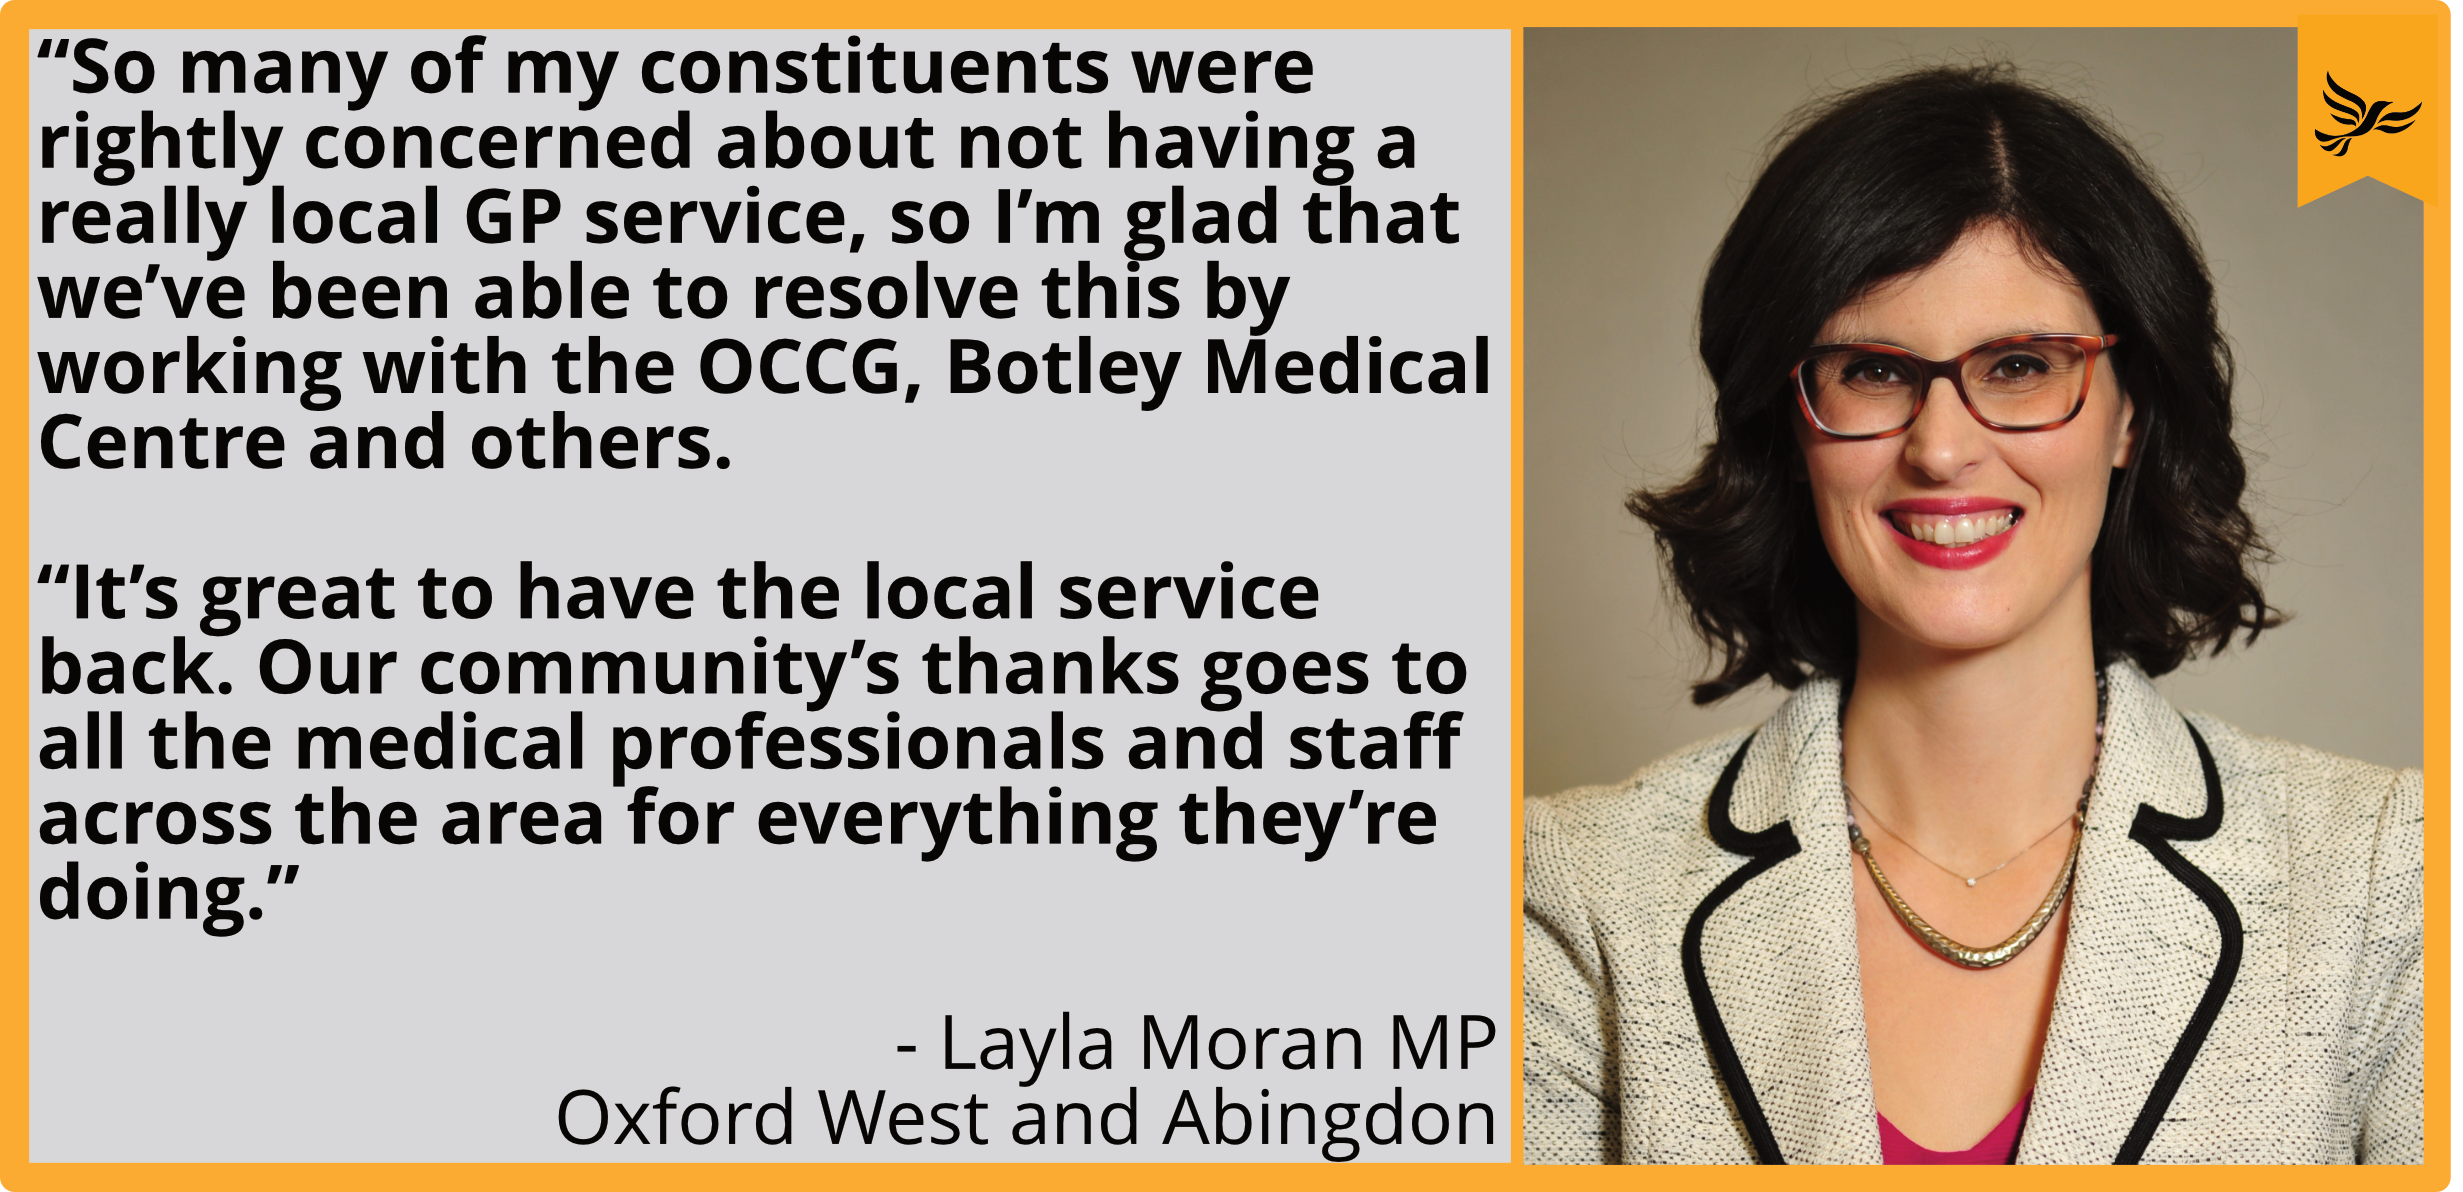 """So many of my constituents were rightly concerned about not having a really local GP service, so I'm glad that we've been able to resolve this by working with the OCCG, Botley Medical Centre and others.  ""It's great to have the local service back. Our community's thanks goes to all the medical professionals and staff across the area for everything they're doing."""